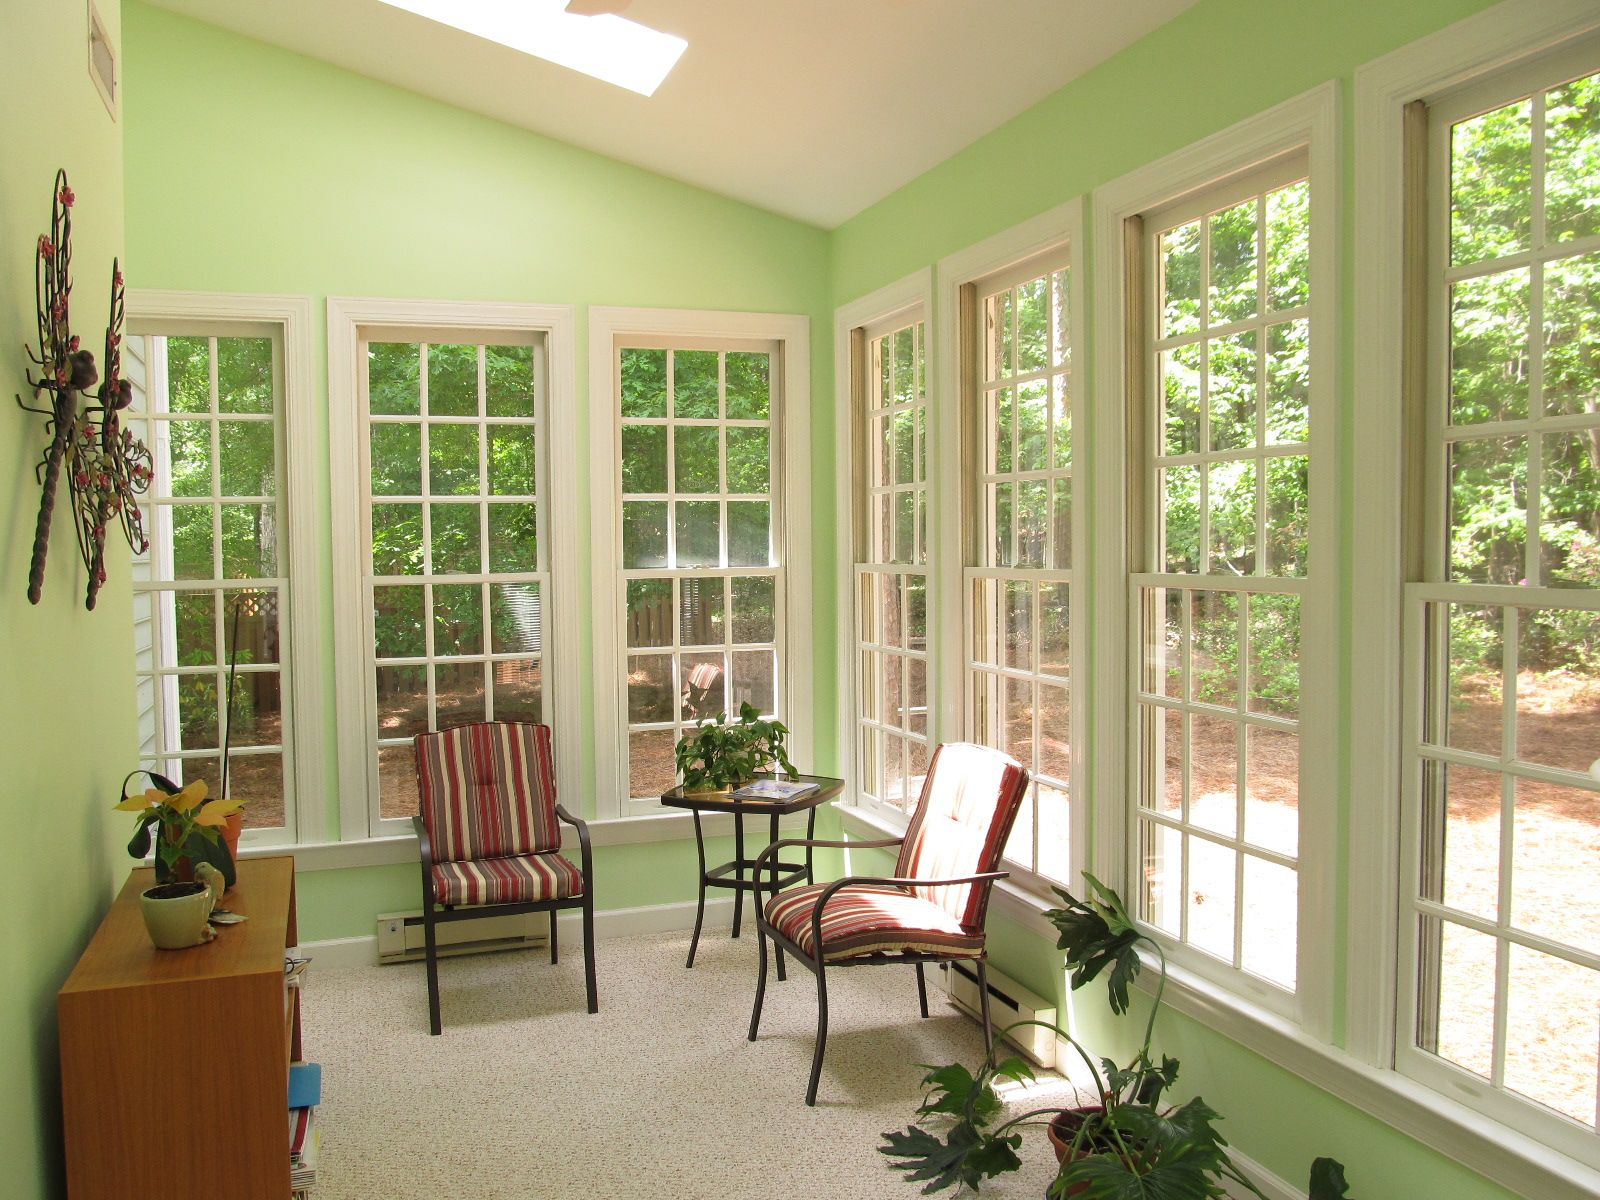 Sunroom Windows For Sale Google Search For The Home In 2019